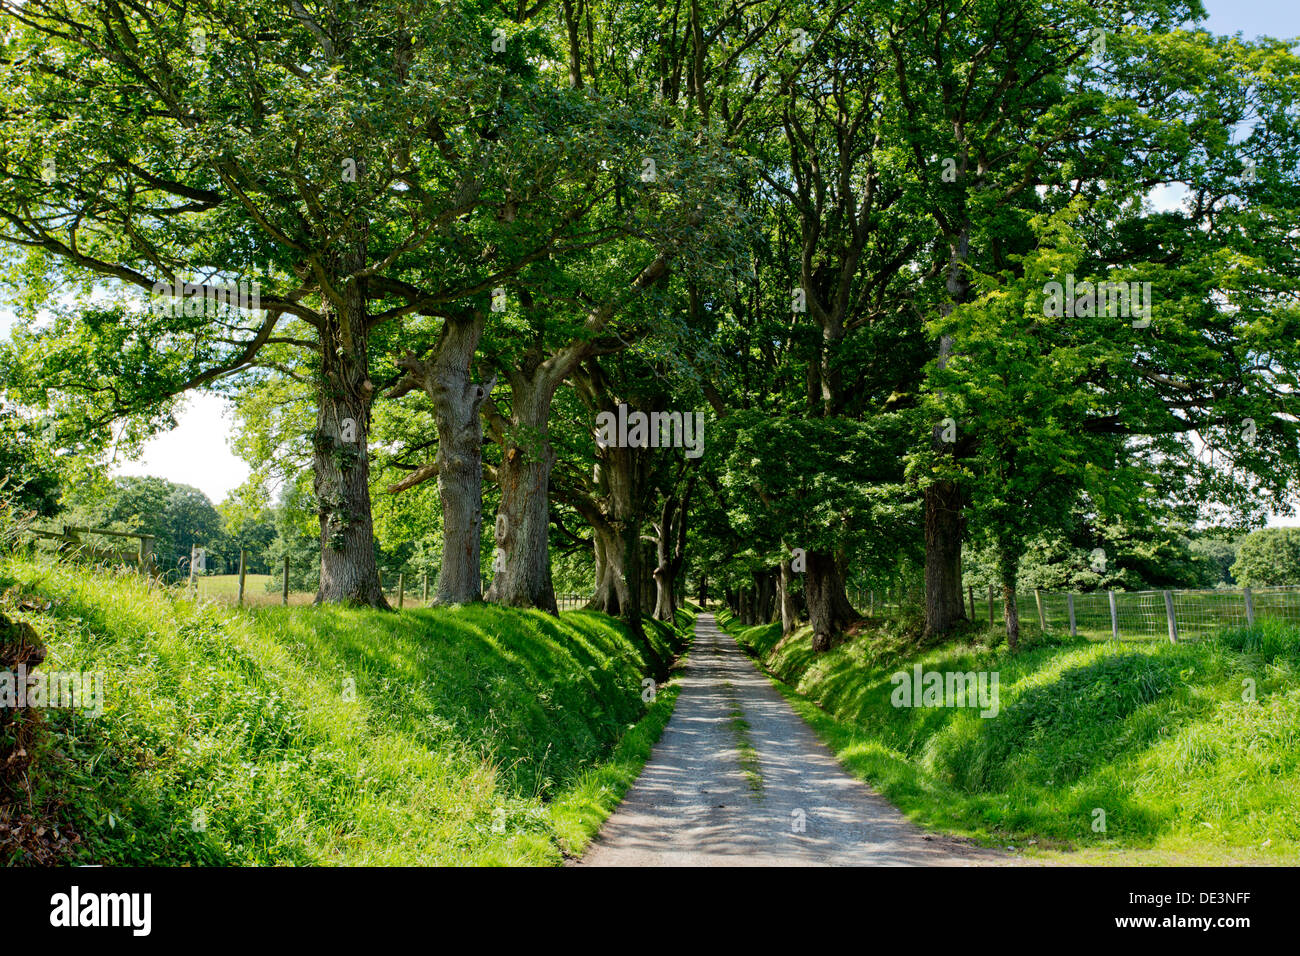 Avenue of trees in afternoon sunshine at Michaelchurch Escley, Herefordshire - Stock Image